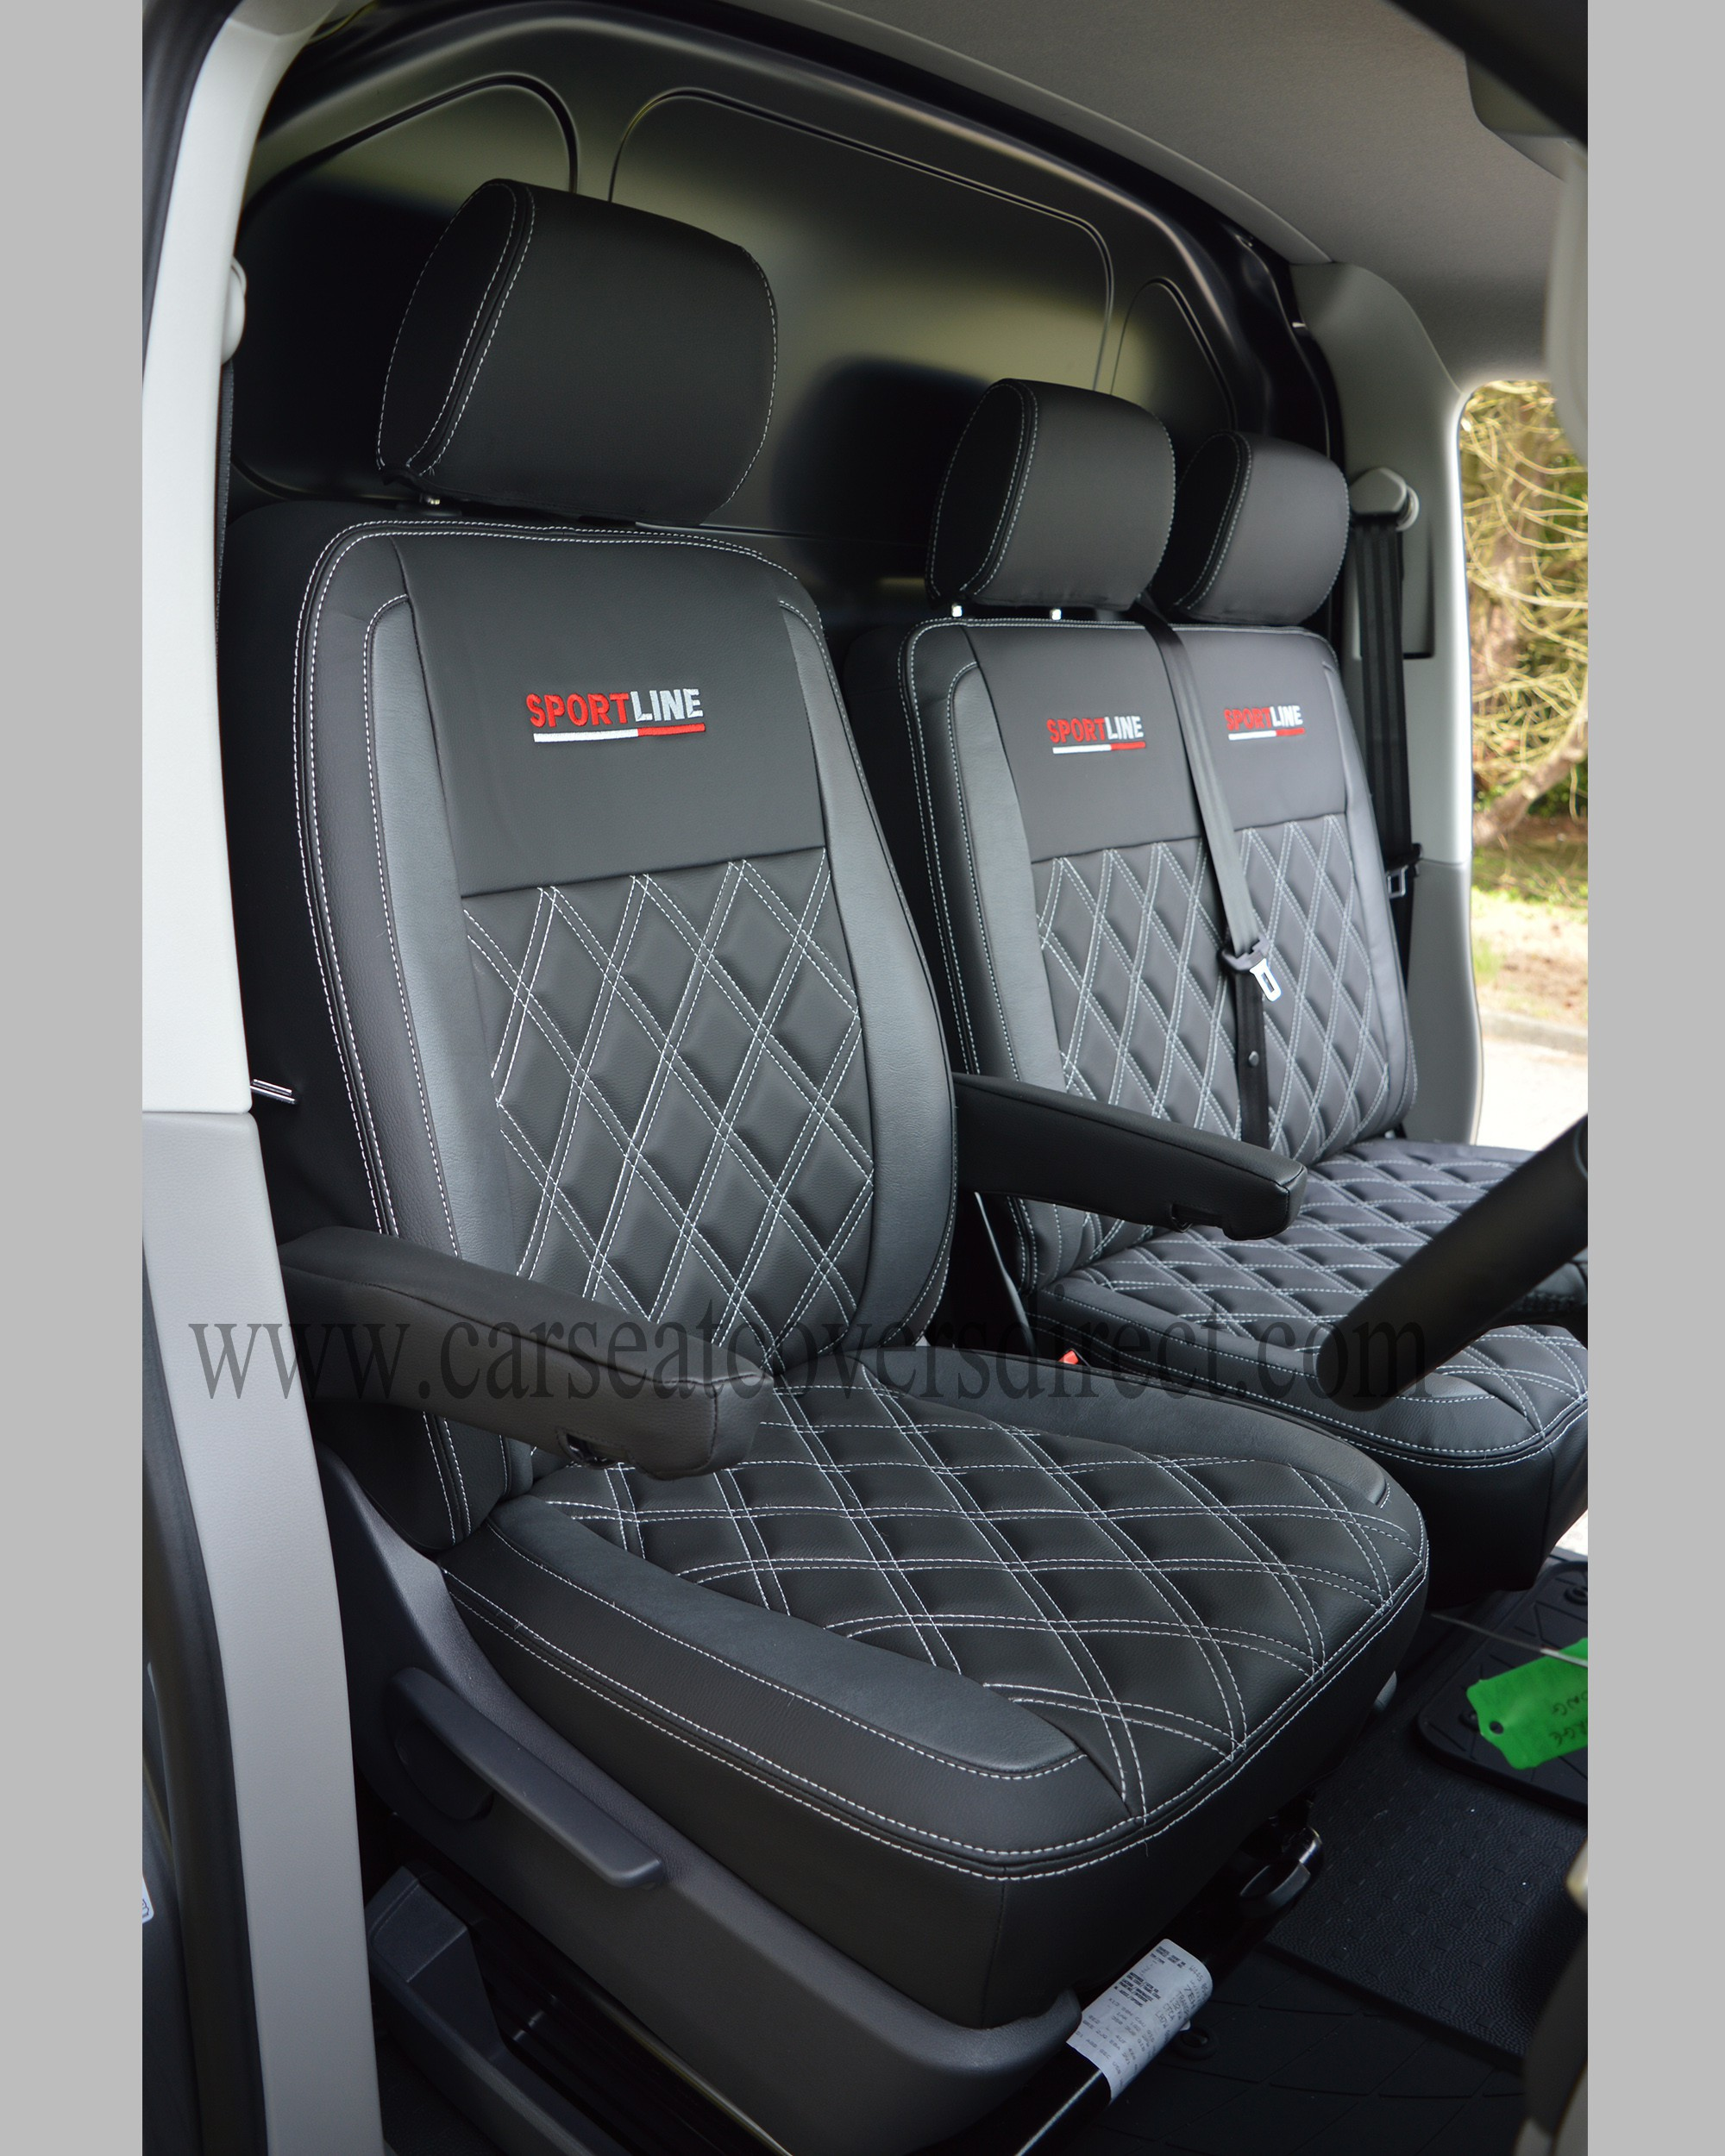 Volkswagen VW Transporter T6 Seat Covers -  Drivers seat